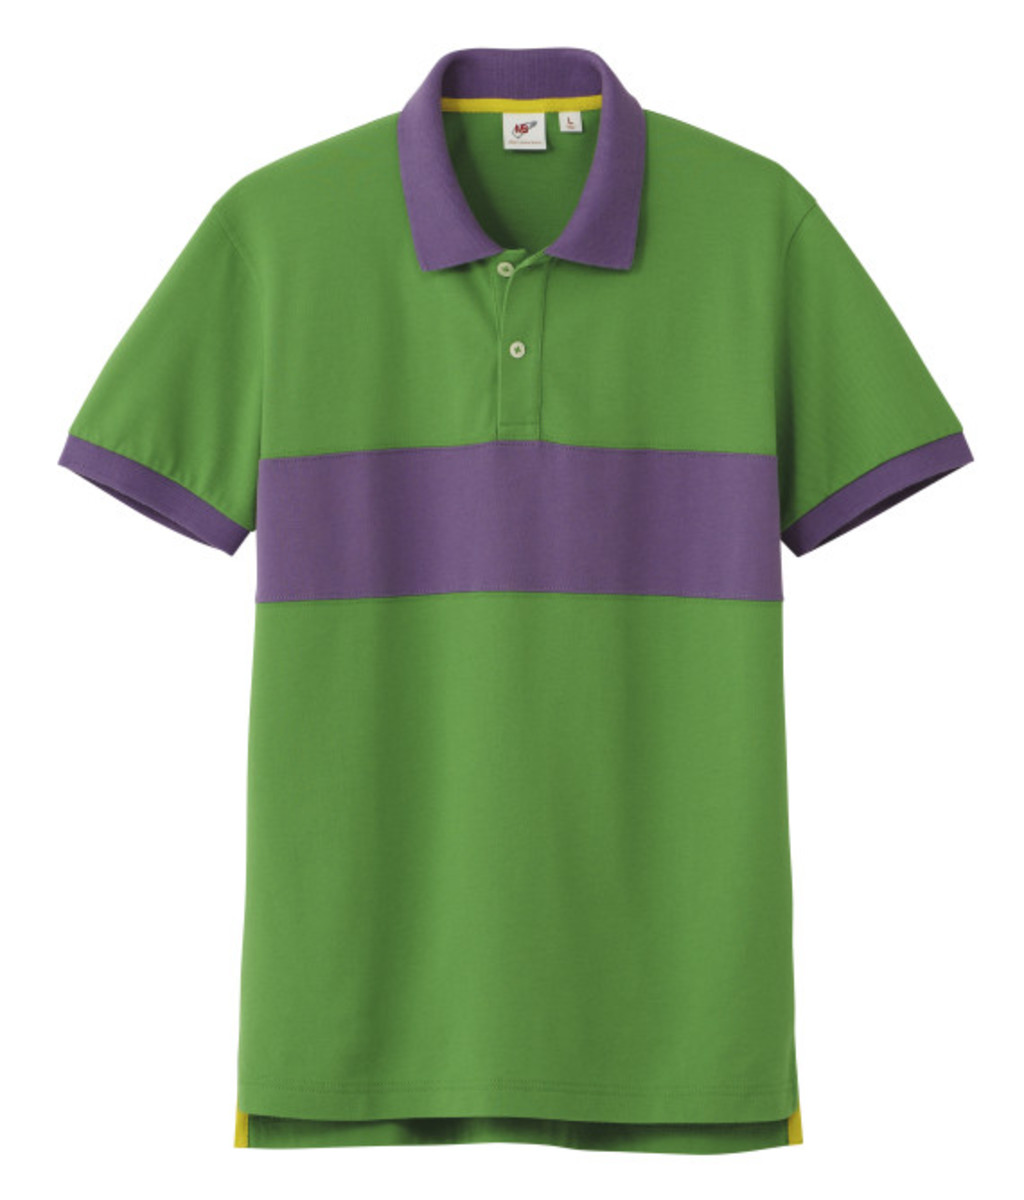 michael-bastian-x-uniqlo-mens-polo-shirt-collection-2013-22